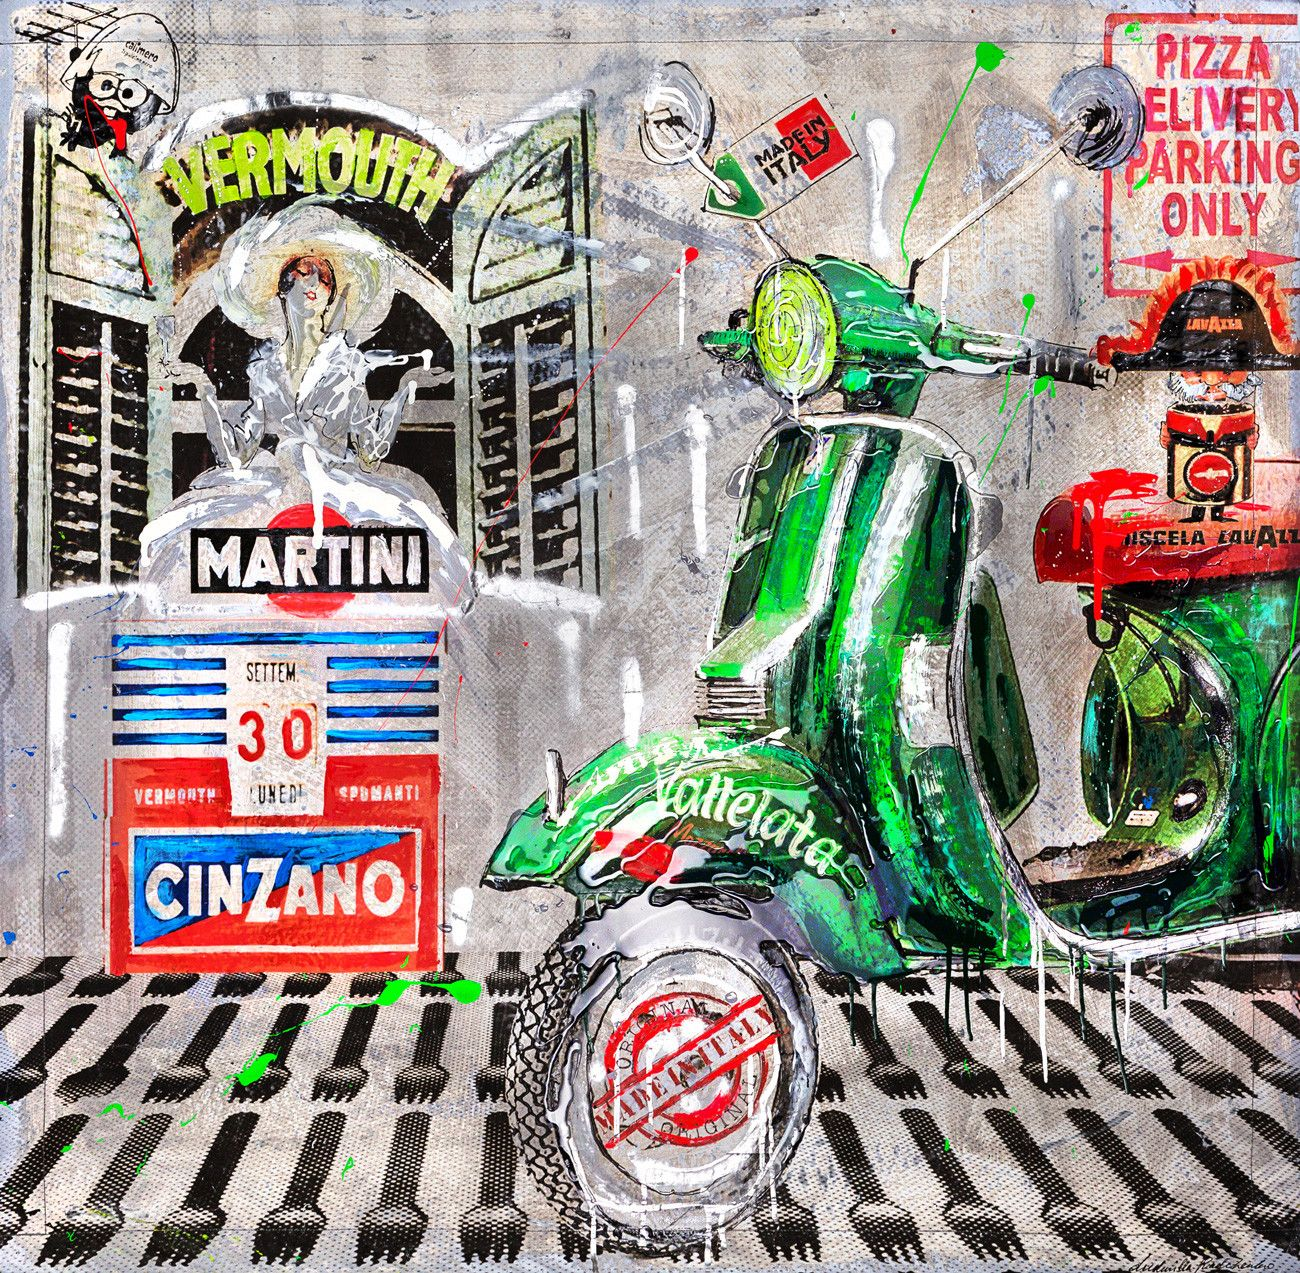 "MIXED MEDIA SU TELA LUDMILLA RADCHENKO "" MADE IN ITALY ""  dimensioni L 120 x H 120 cm."